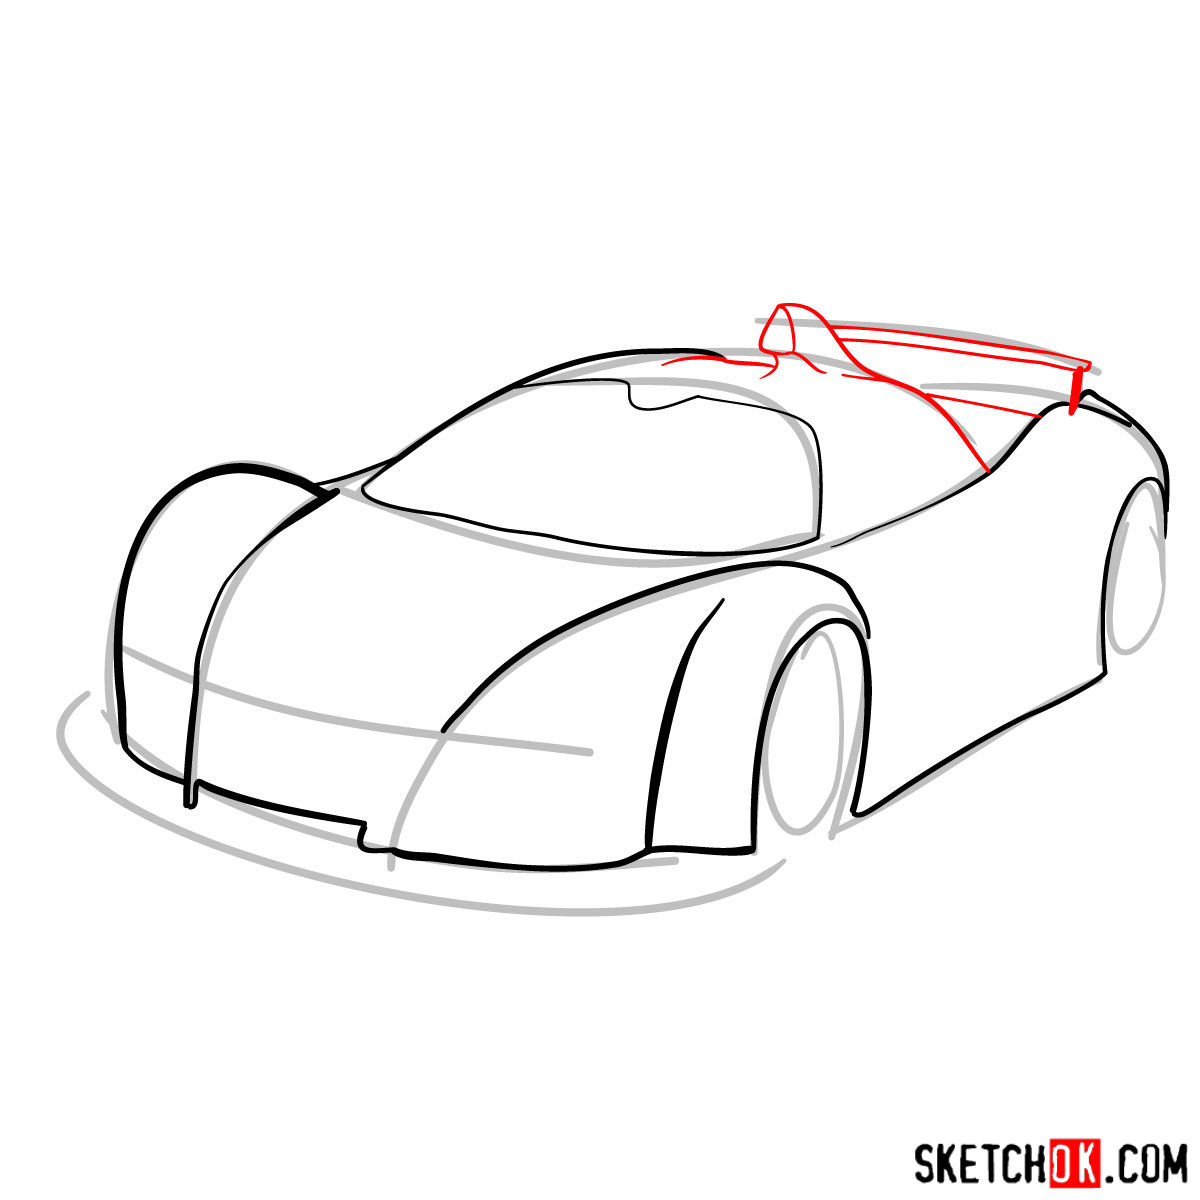 How to draw Gumpert Apolo Sport 2005 - step 05